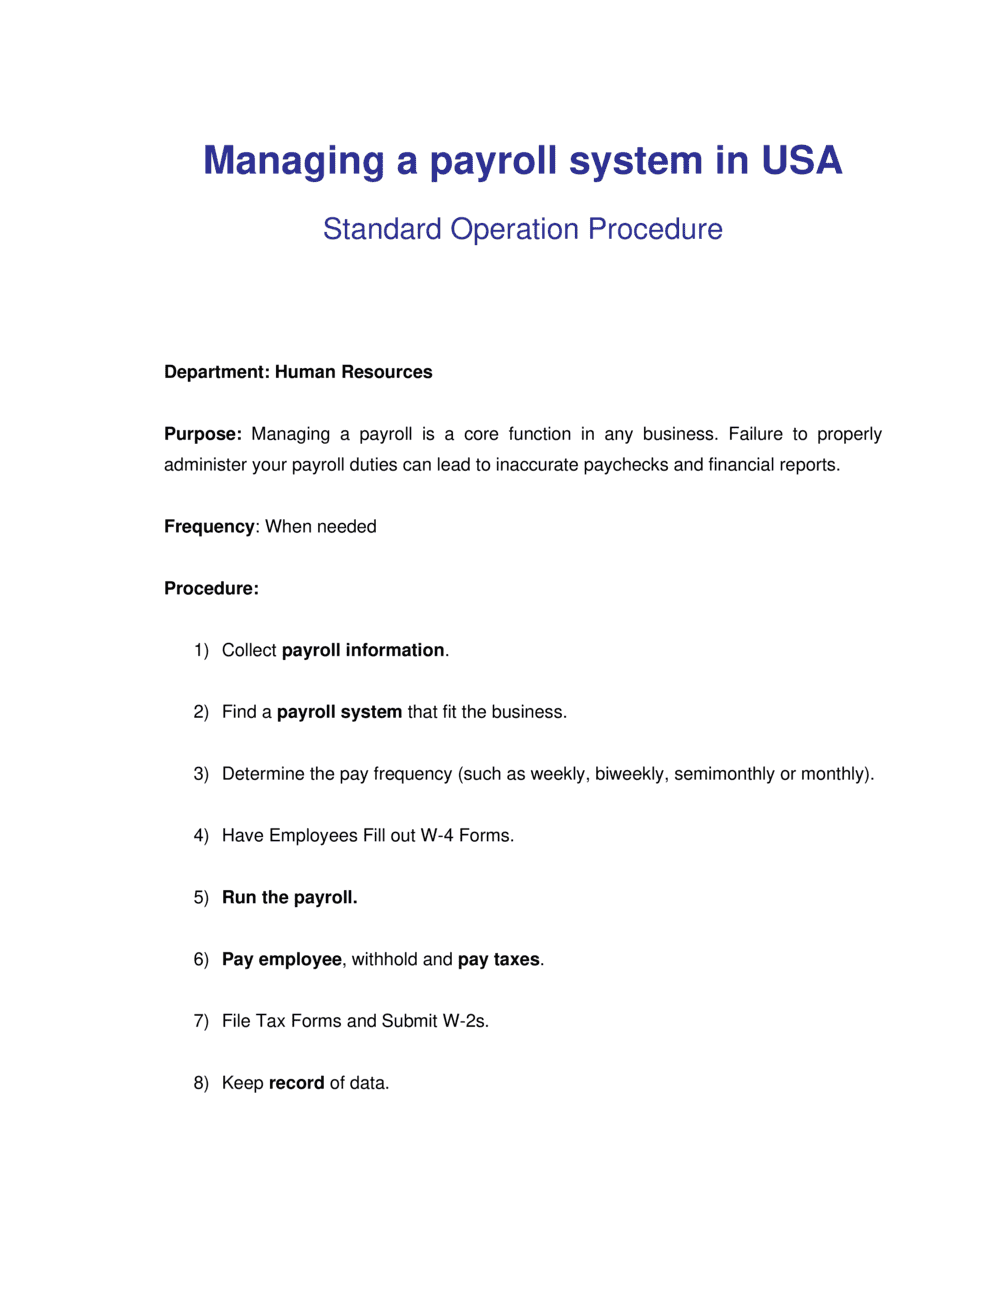 Business-in-a-Box's How to Manage a Payroll System - USA